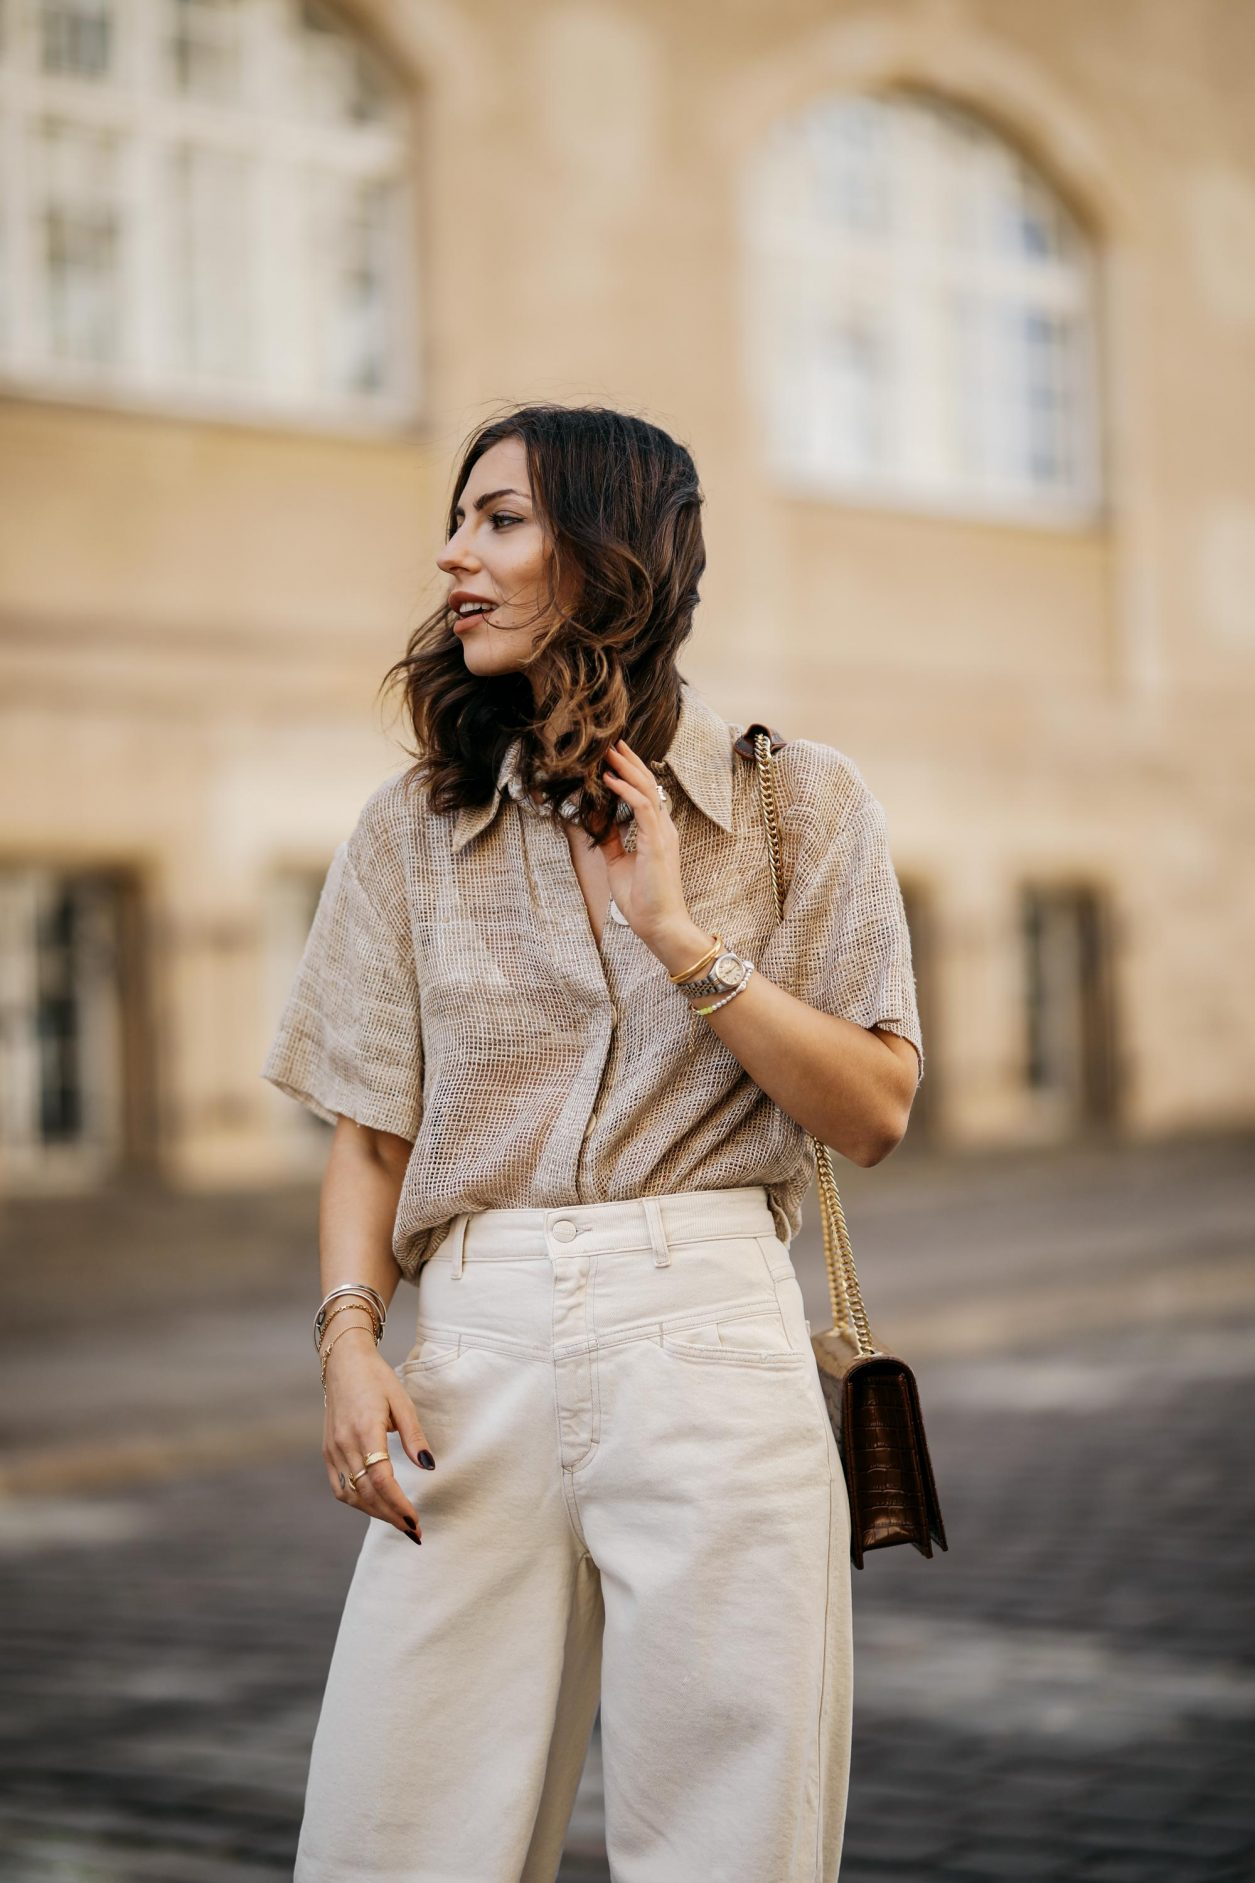 Streetstyle by Masha Sedgwick | Fashion and beauty blogger from Berlin, Germany | Everyday summer outfit inspiration, styling tips white sneakers, casual chic city look, white beige, effortless cool | Wearing wide white jeans, beige linen blouse shirt, cross body brown leather bag, white sneaker | Photographer Jeremy Moeller